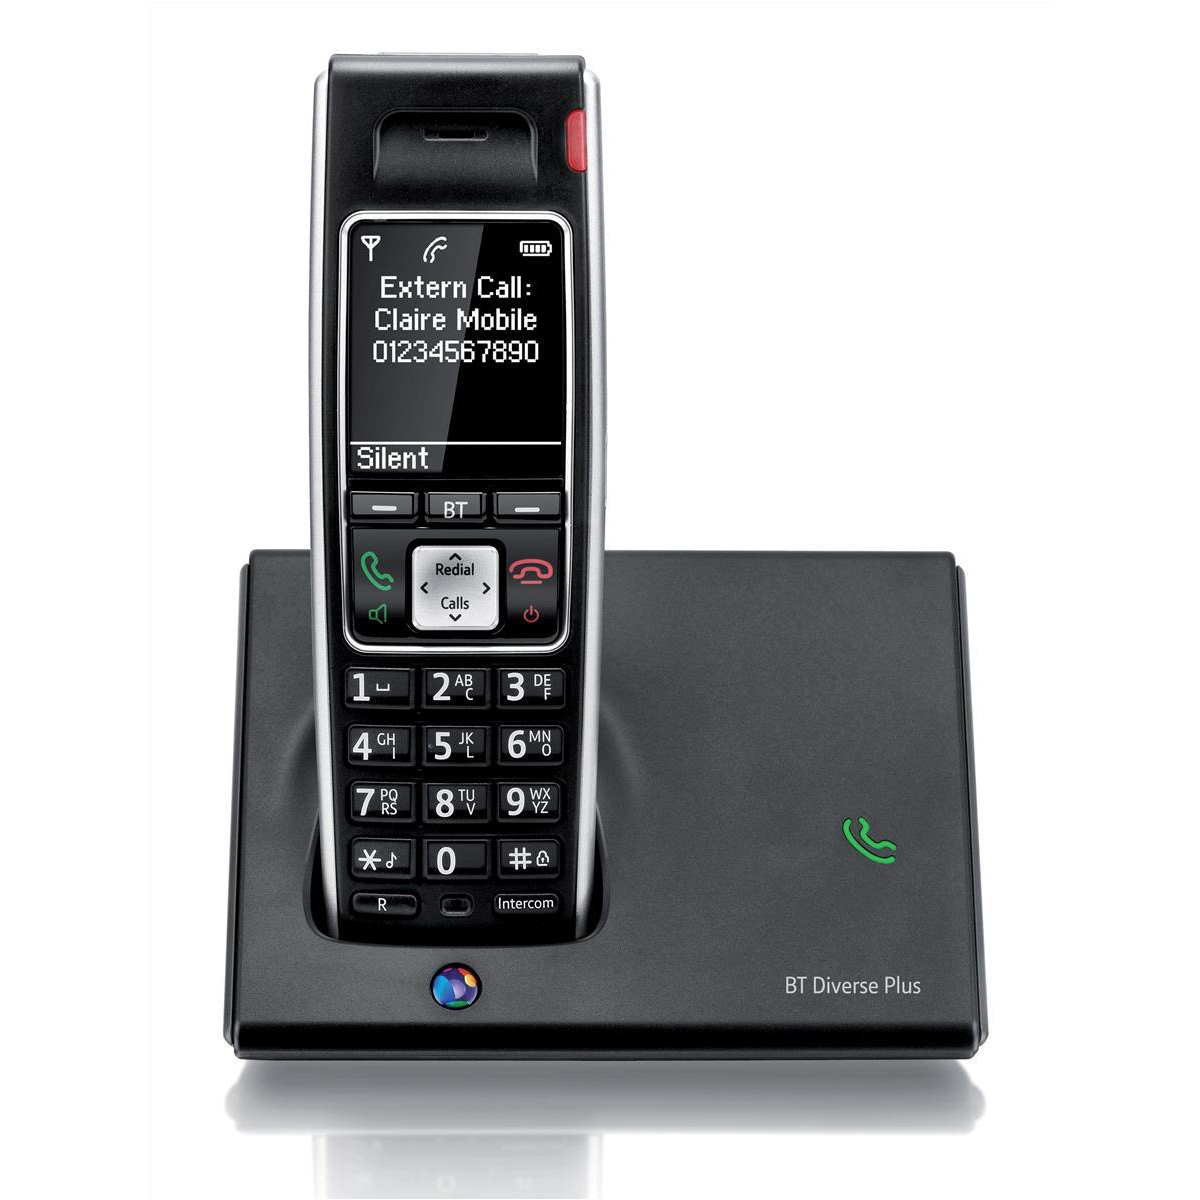 Phone handsets BT Diverse 7410 Plus DECT Telephone Cordless SMS 200-entry Directory 10 Calls List Ref 060745